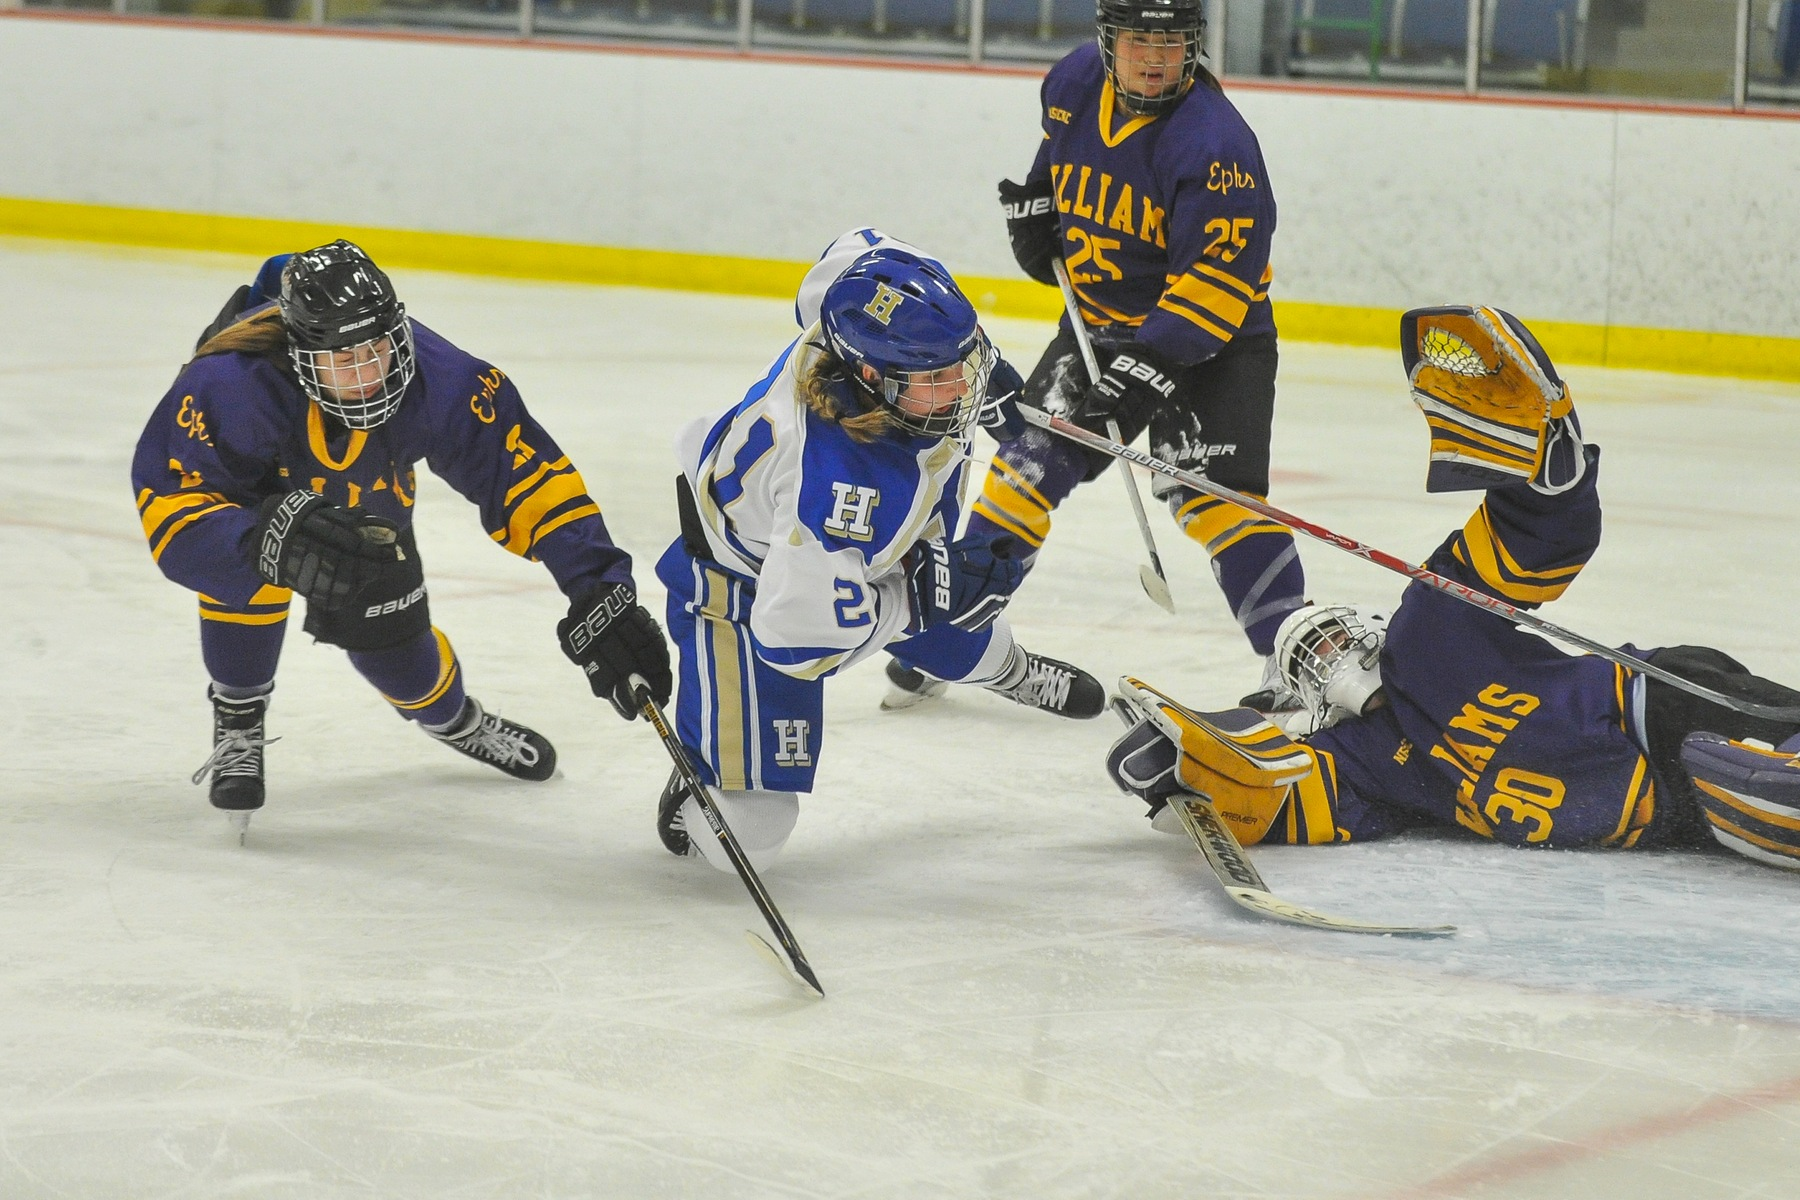 Women's hockey comes back twice, ties Morrisville State 2-2